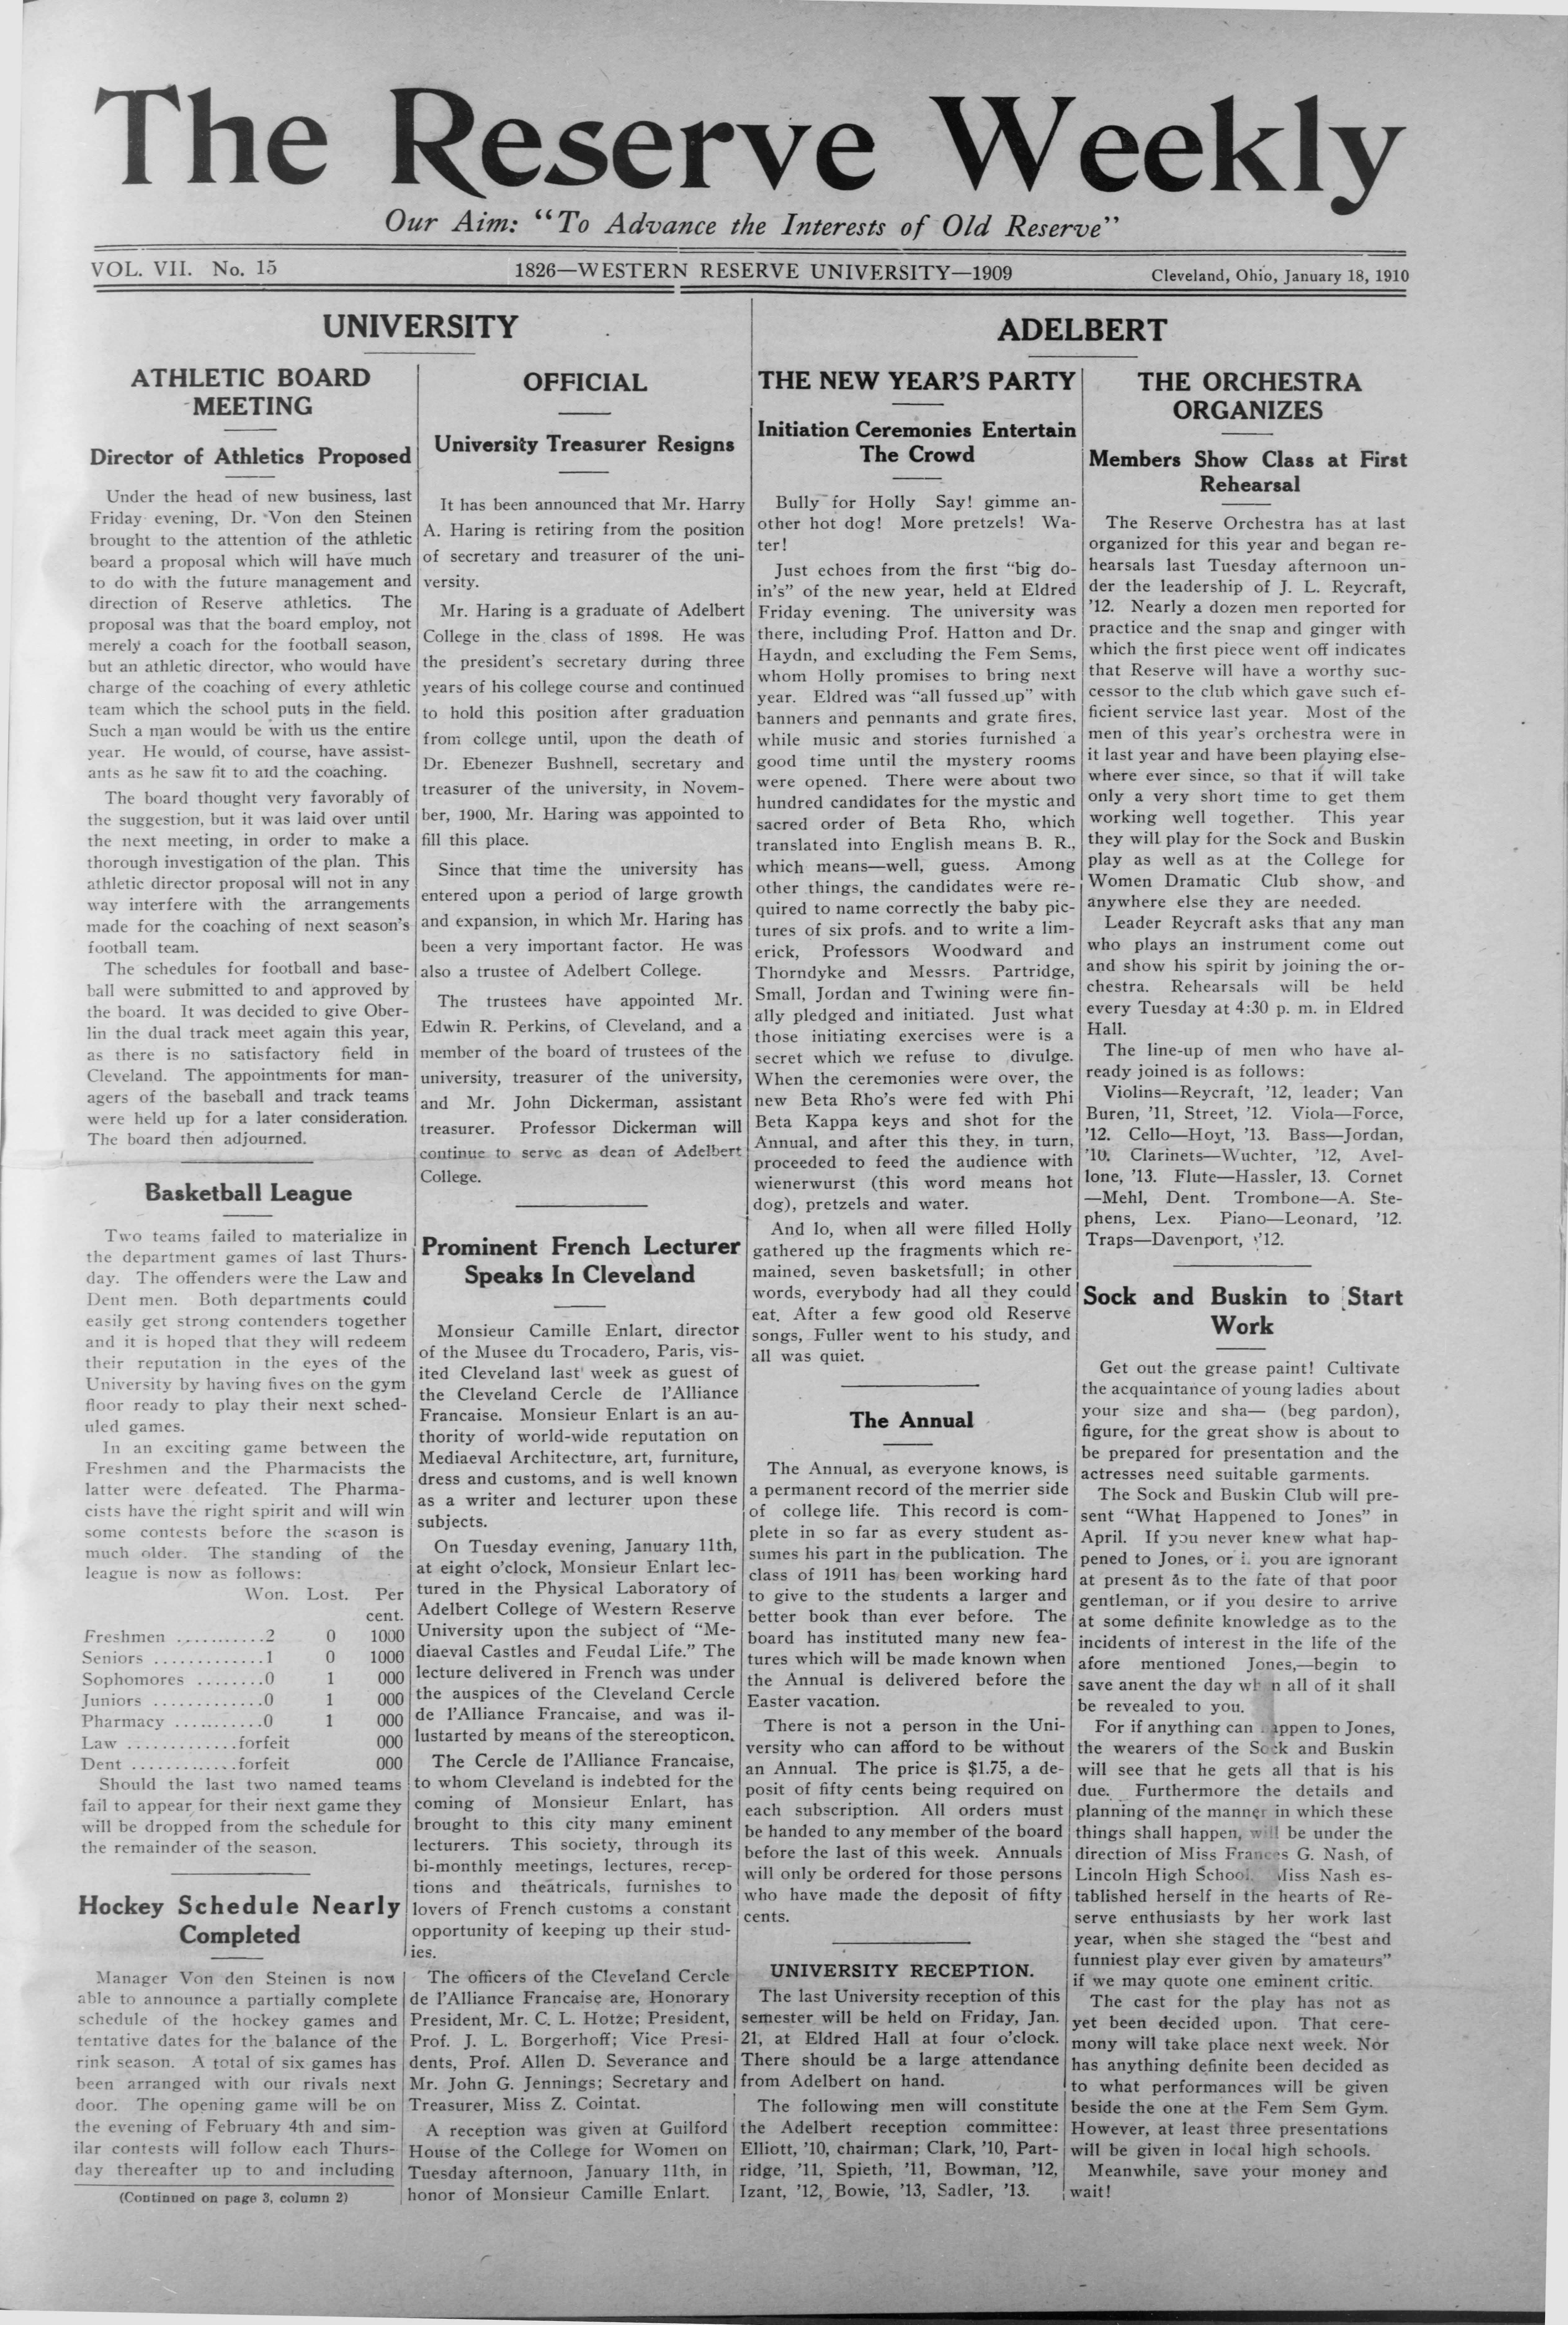 Frontpage of The Reserve Weekly, Volume VII, Number 15, 18 January 1910